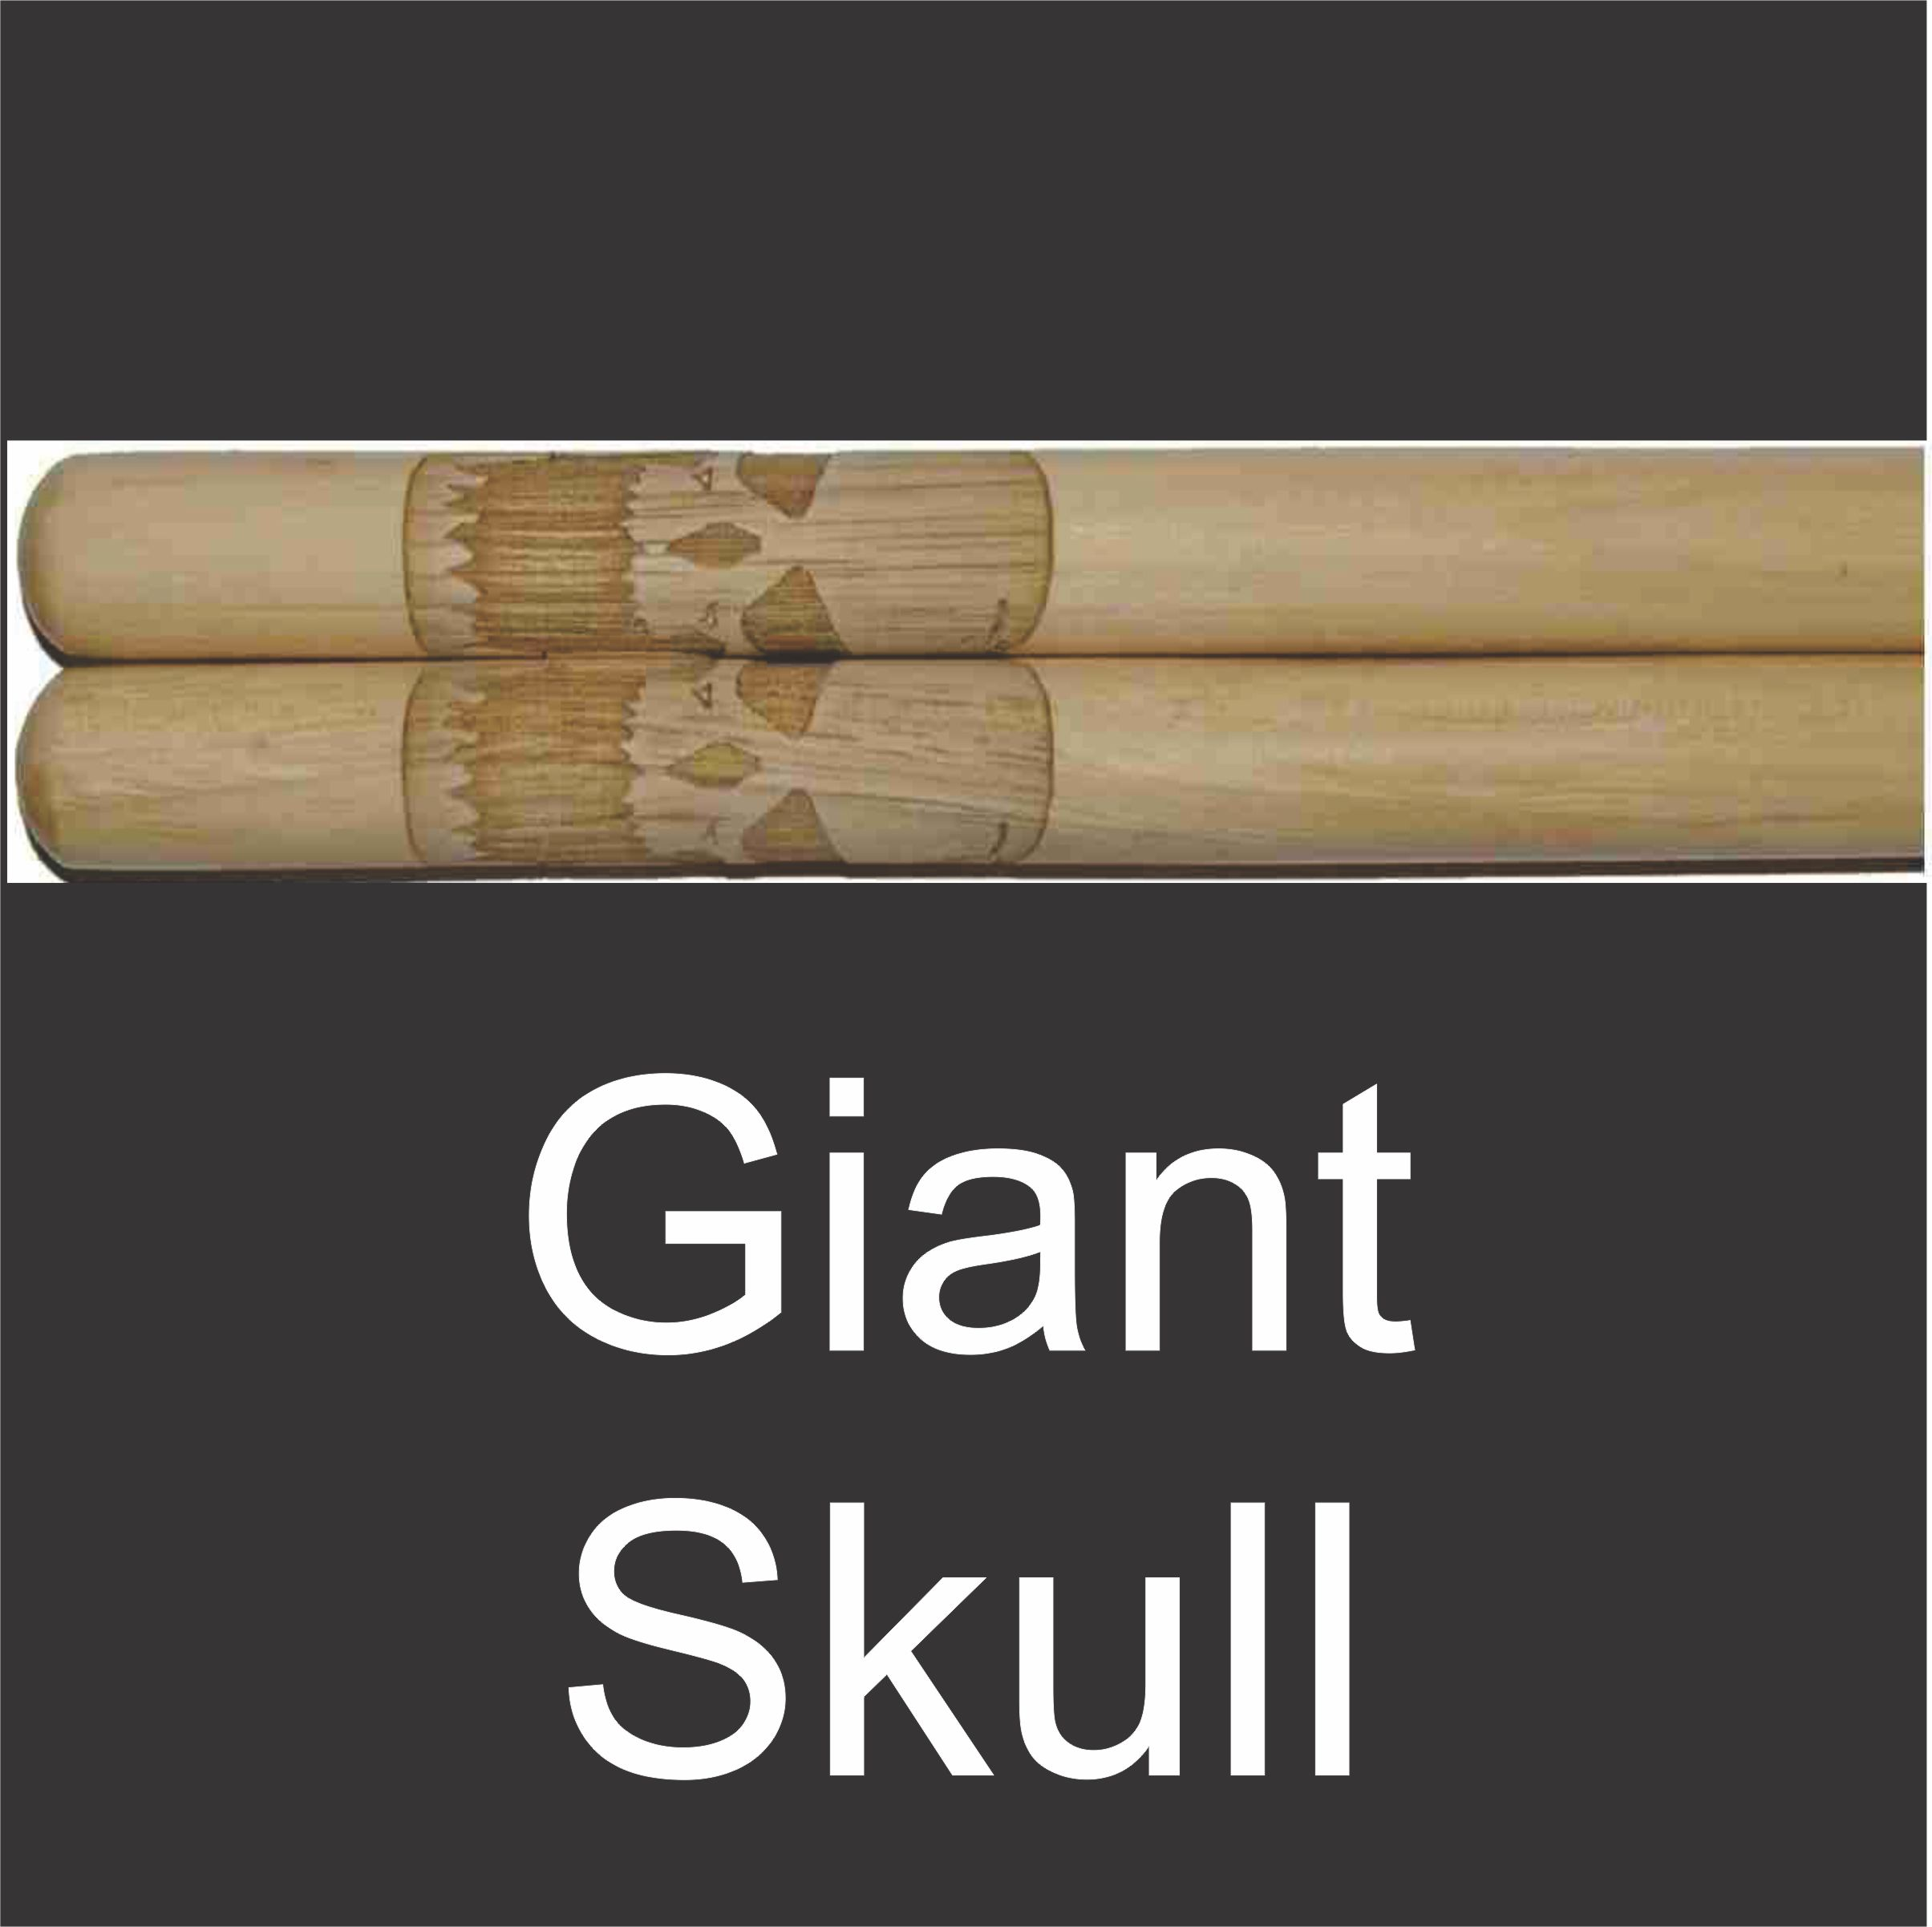 personalized drumstick set with giant skull engraving